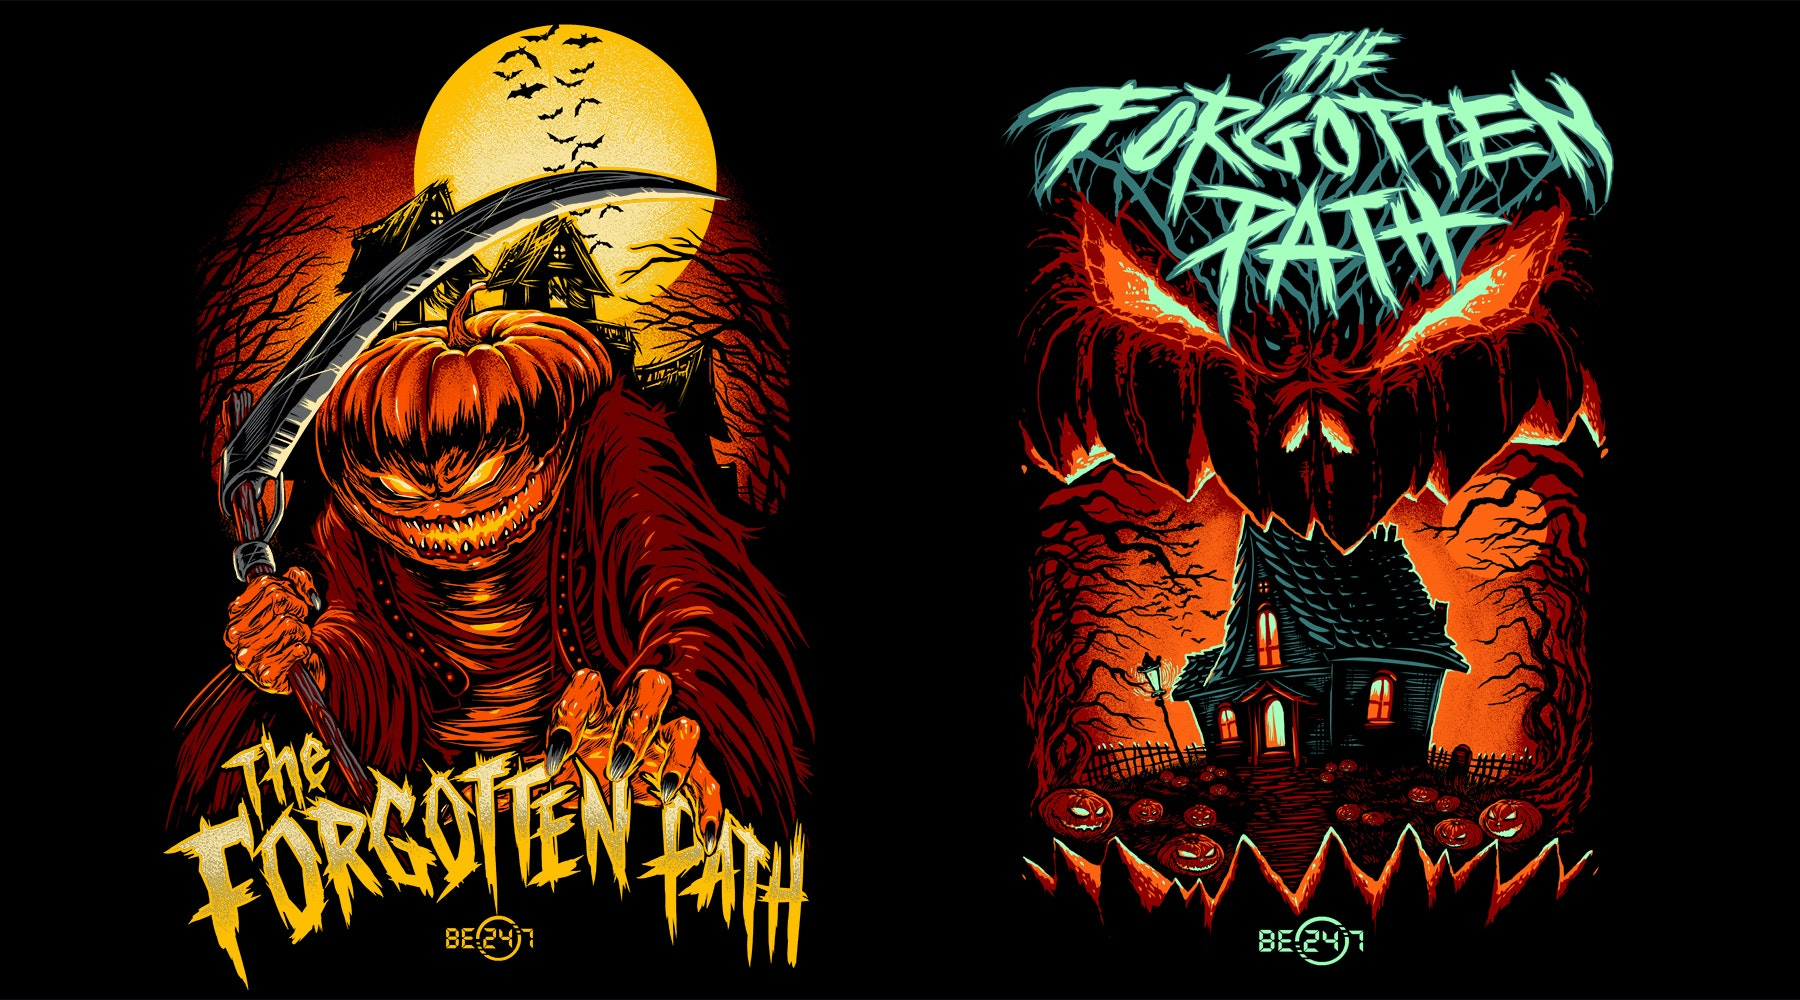 The Forgotten Path t shirt